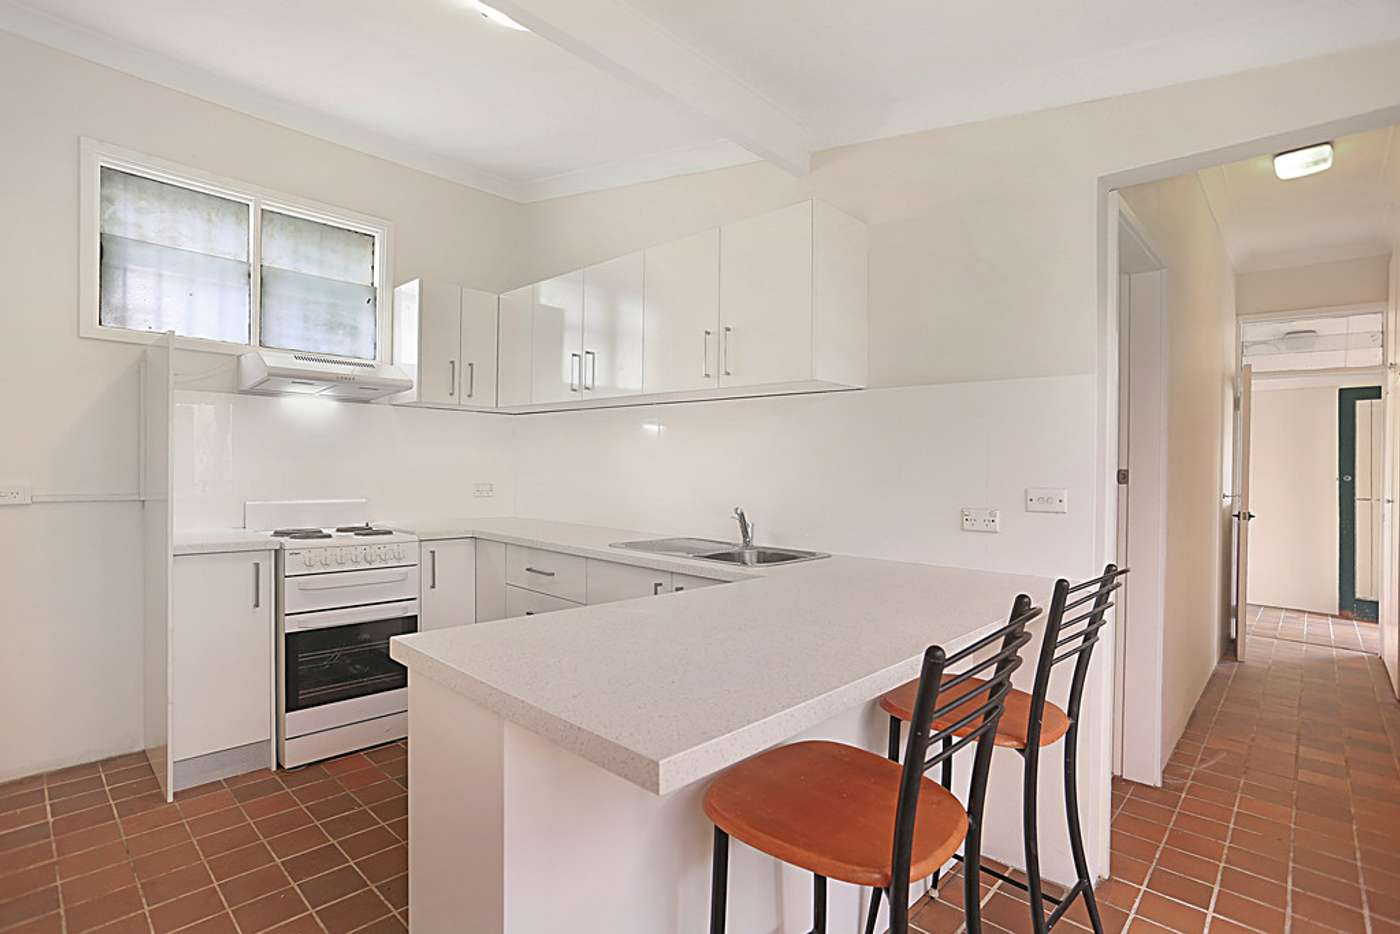 Main view of Homely terrace listing, 219 Denison St, Newtown NSW 2042